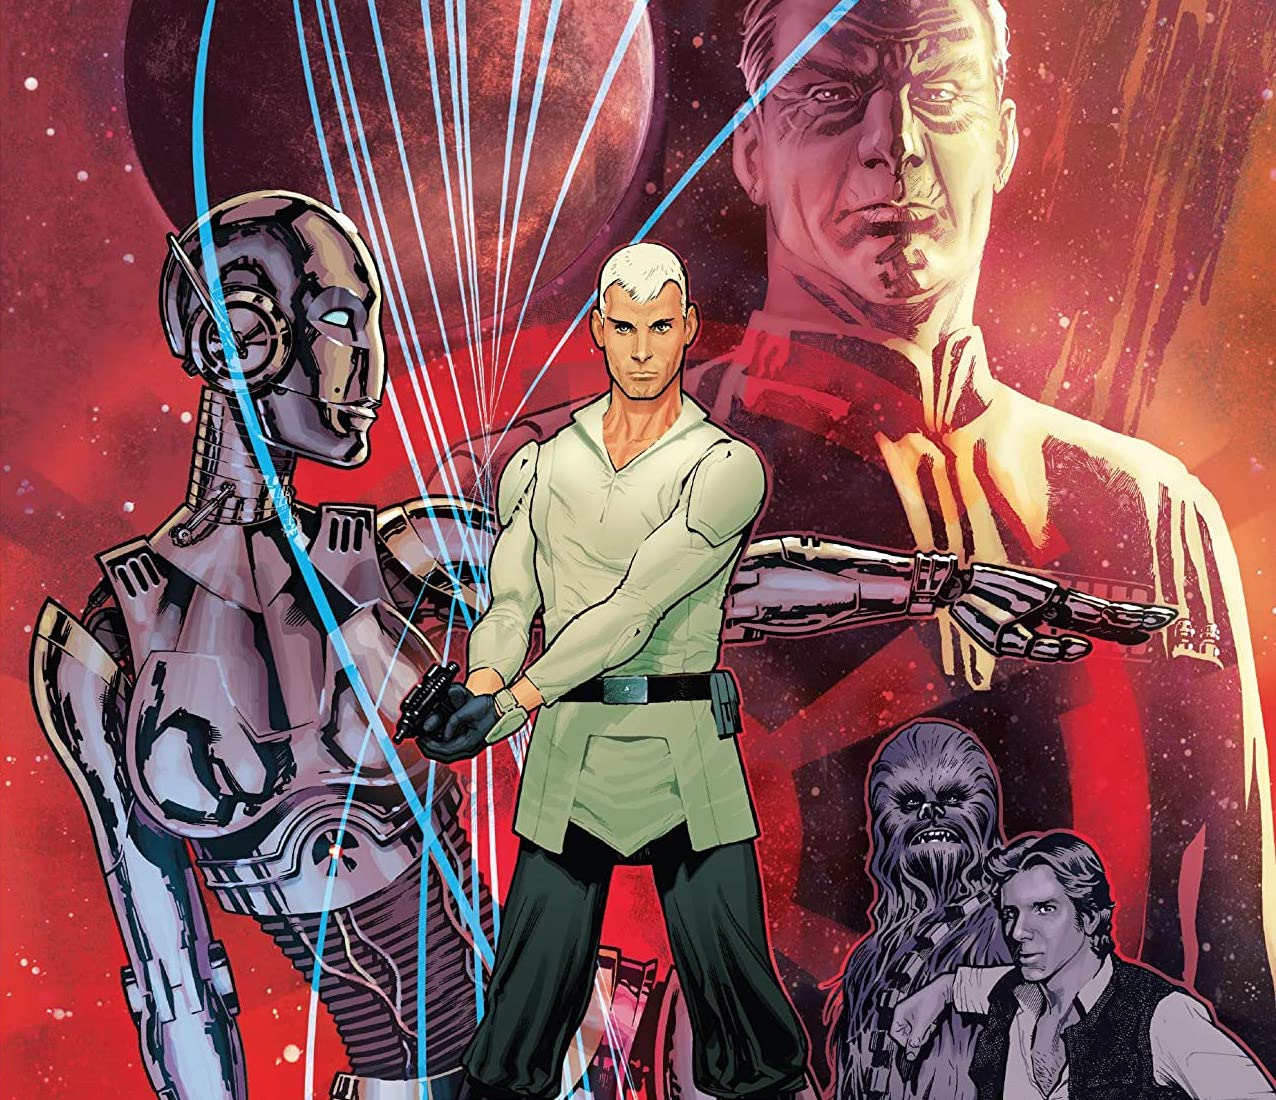 Star Wars Legends Epic Collection Vol. 6 features tales well worth telling in movies or TV.